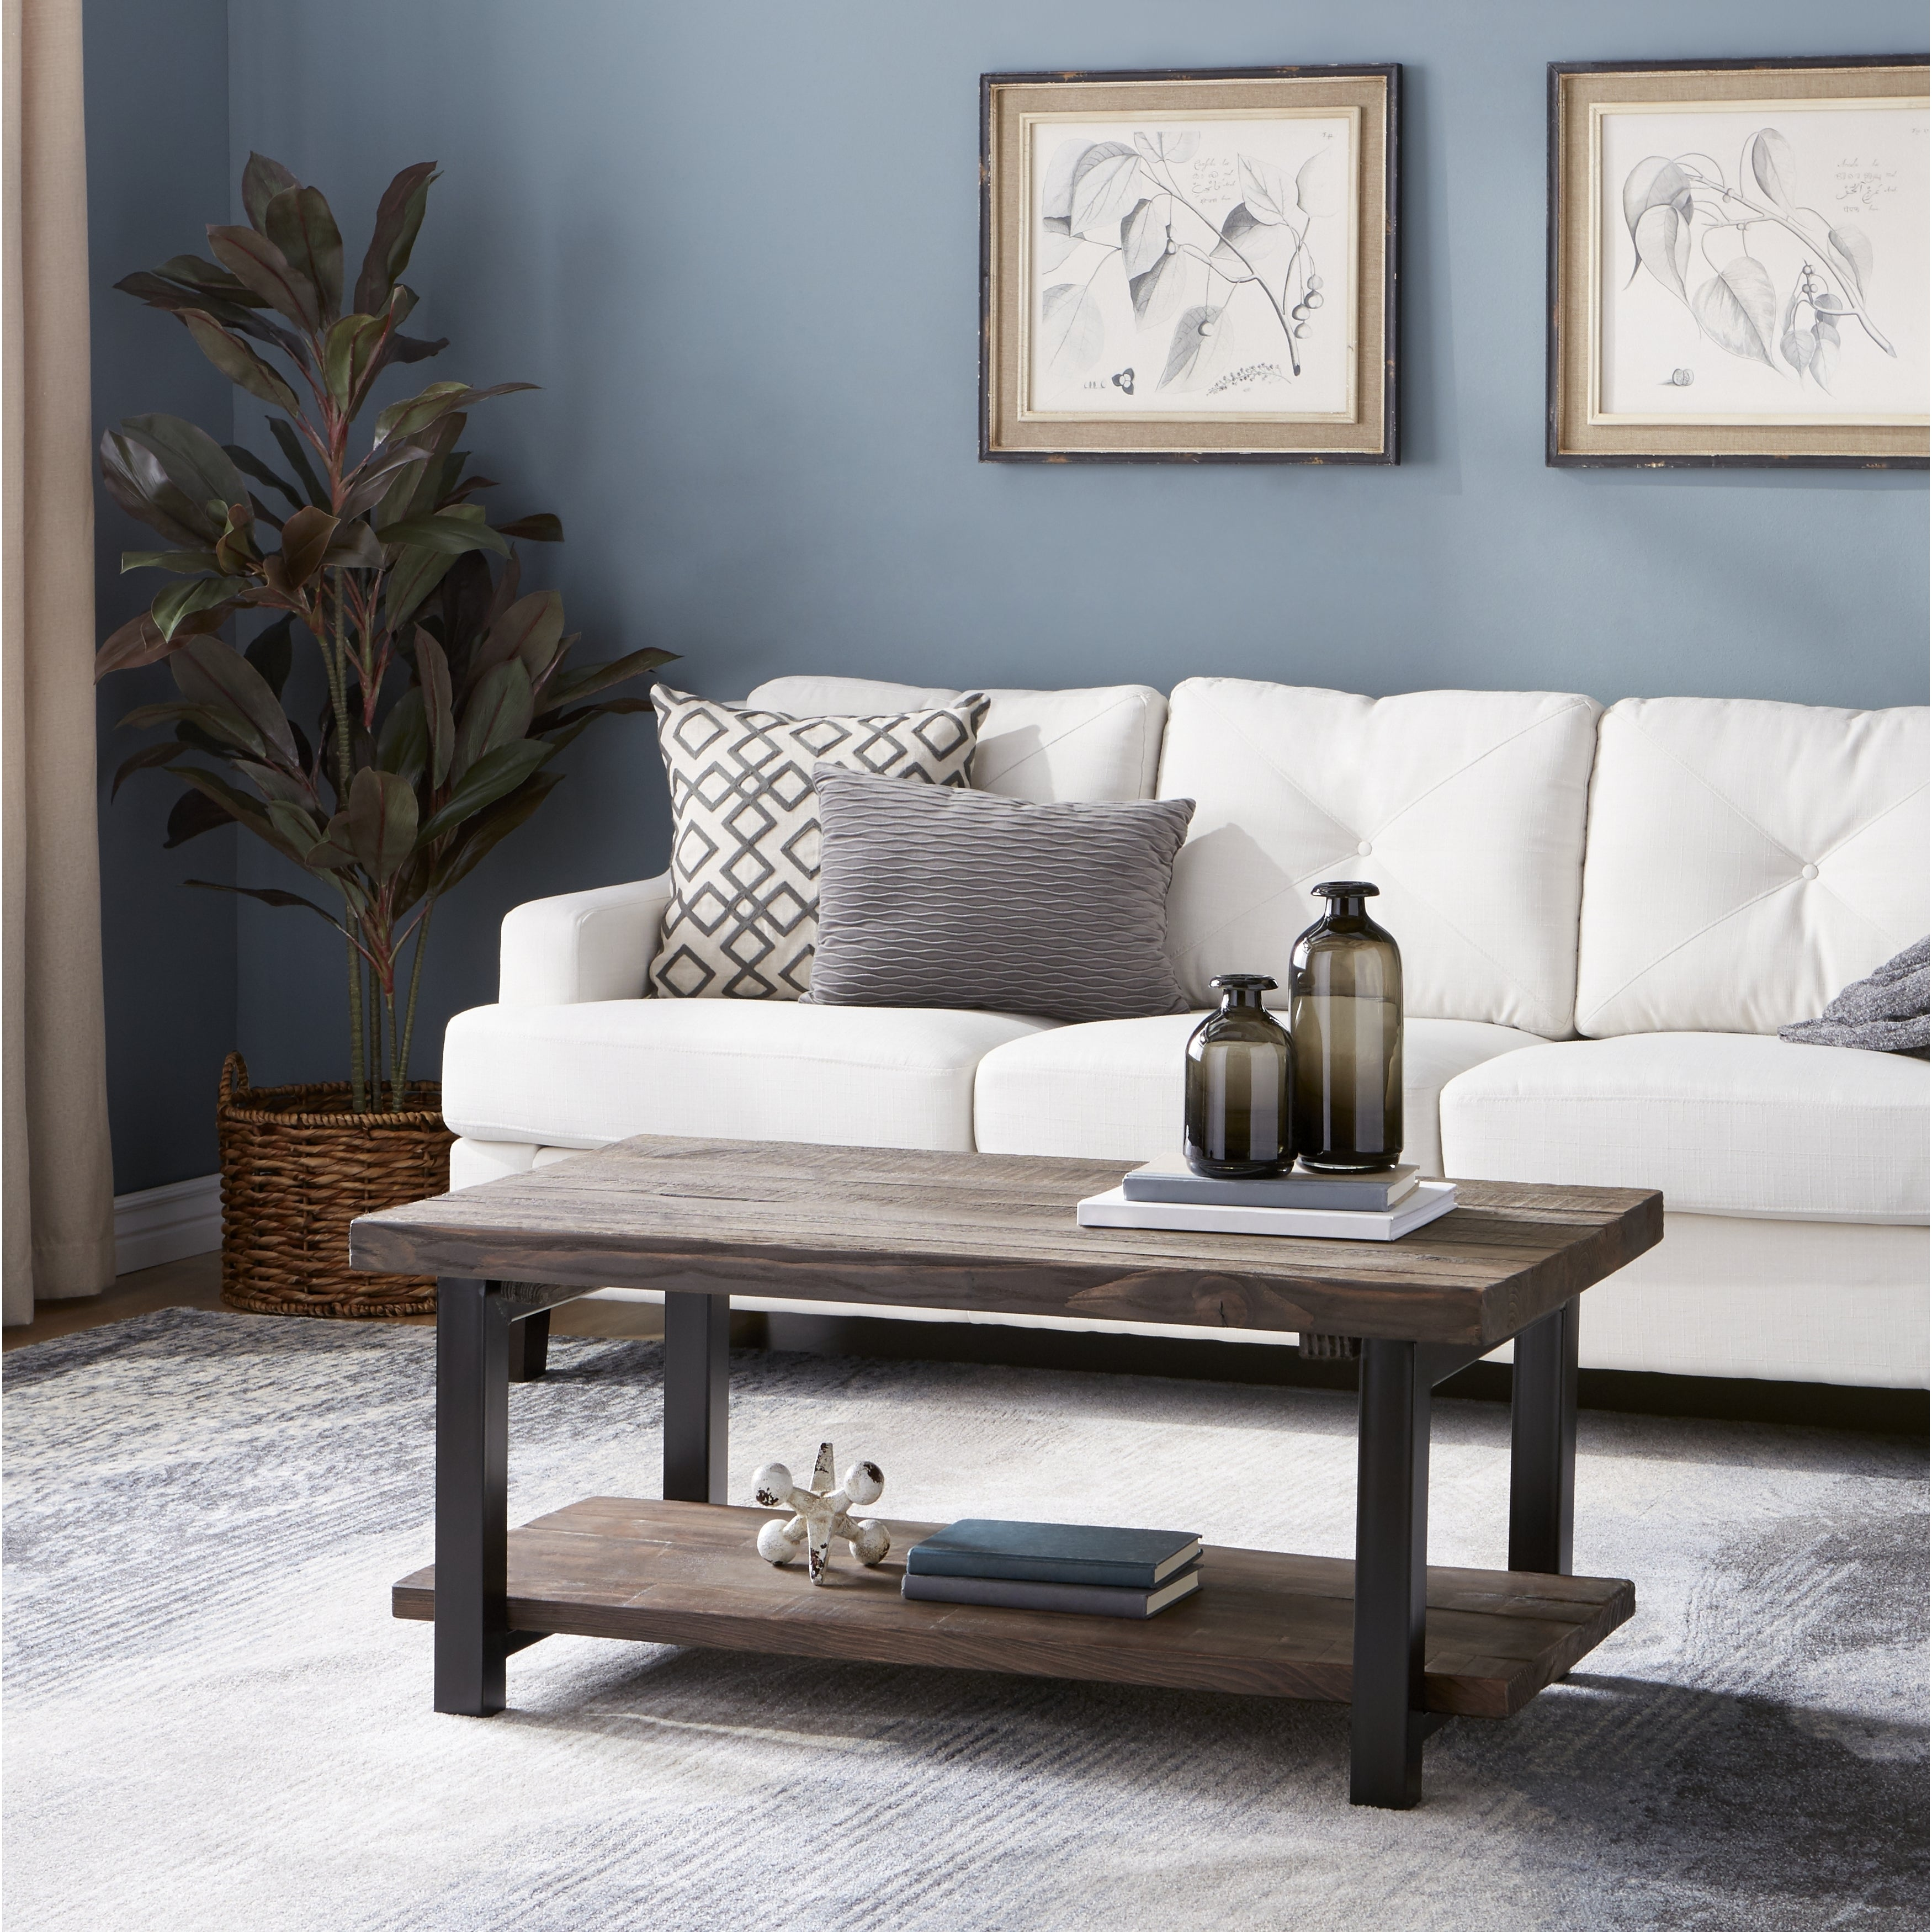 Reclaimed Polished Wood Coffee Table: Shop The Gray Barn Michaelis Reclaimed Wood 42-inch Coffee